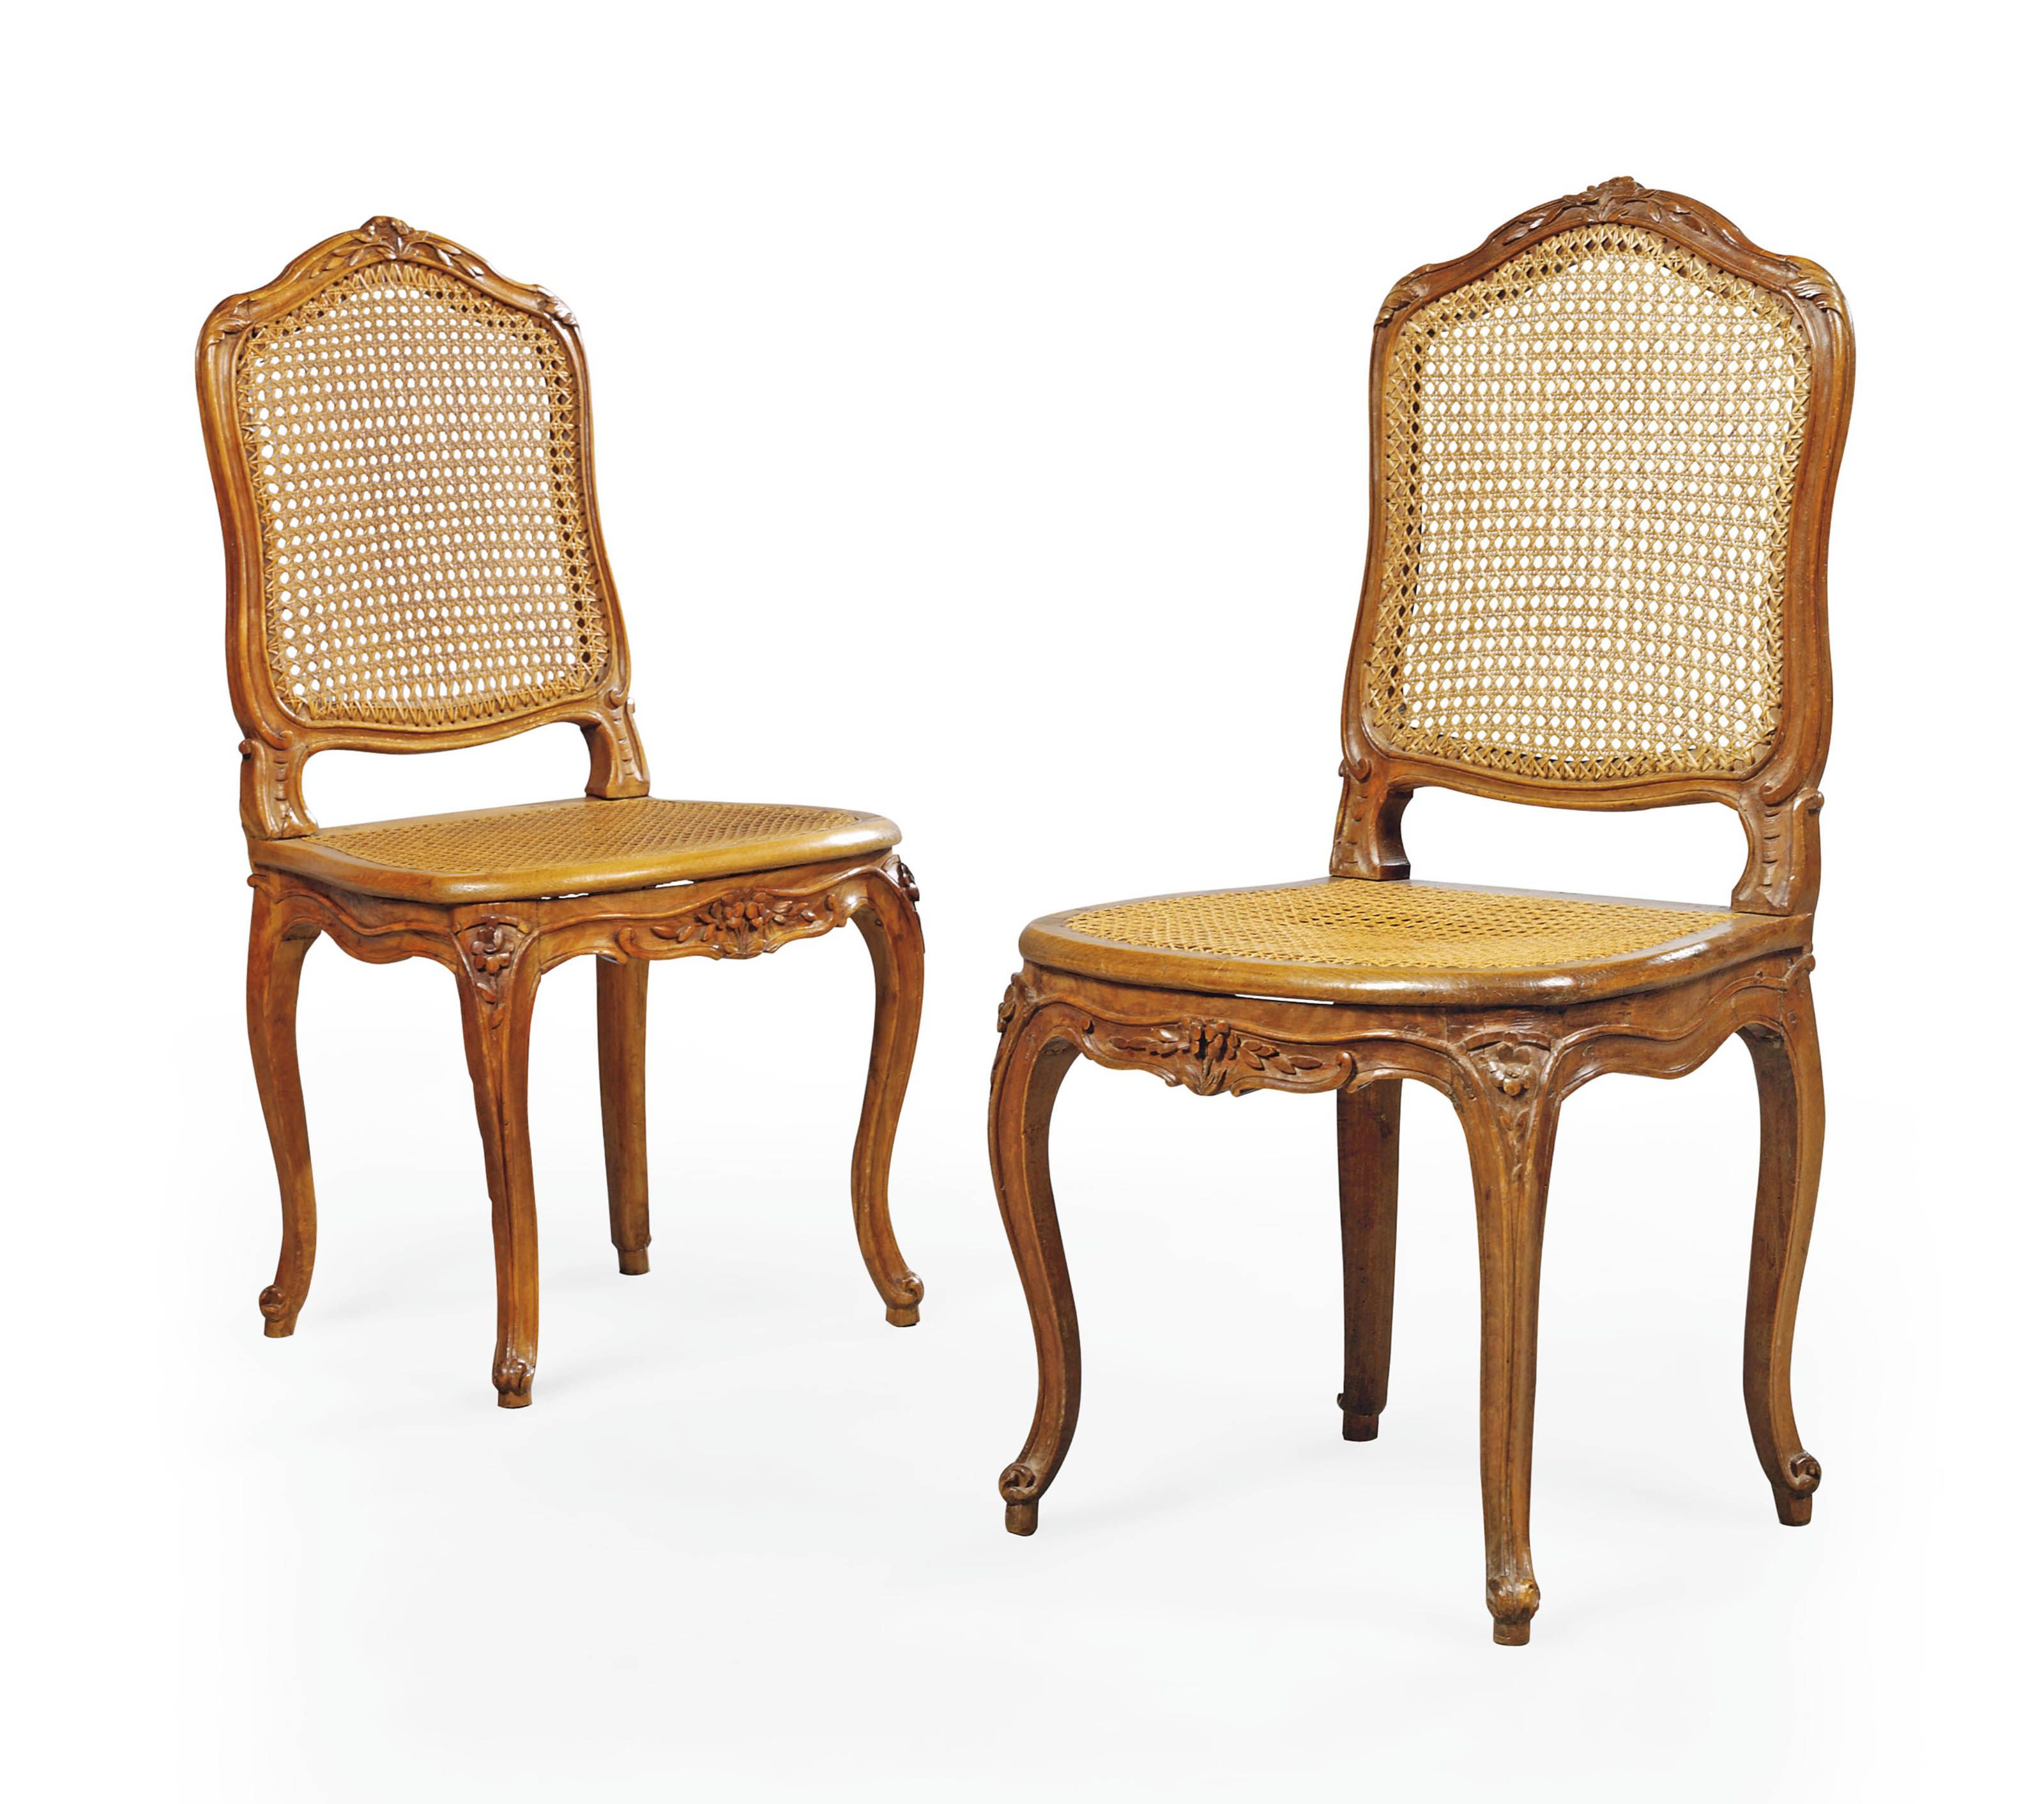 A PAIR OF LOUIS XV BEECH SIDE CHAIRS A LA REINE